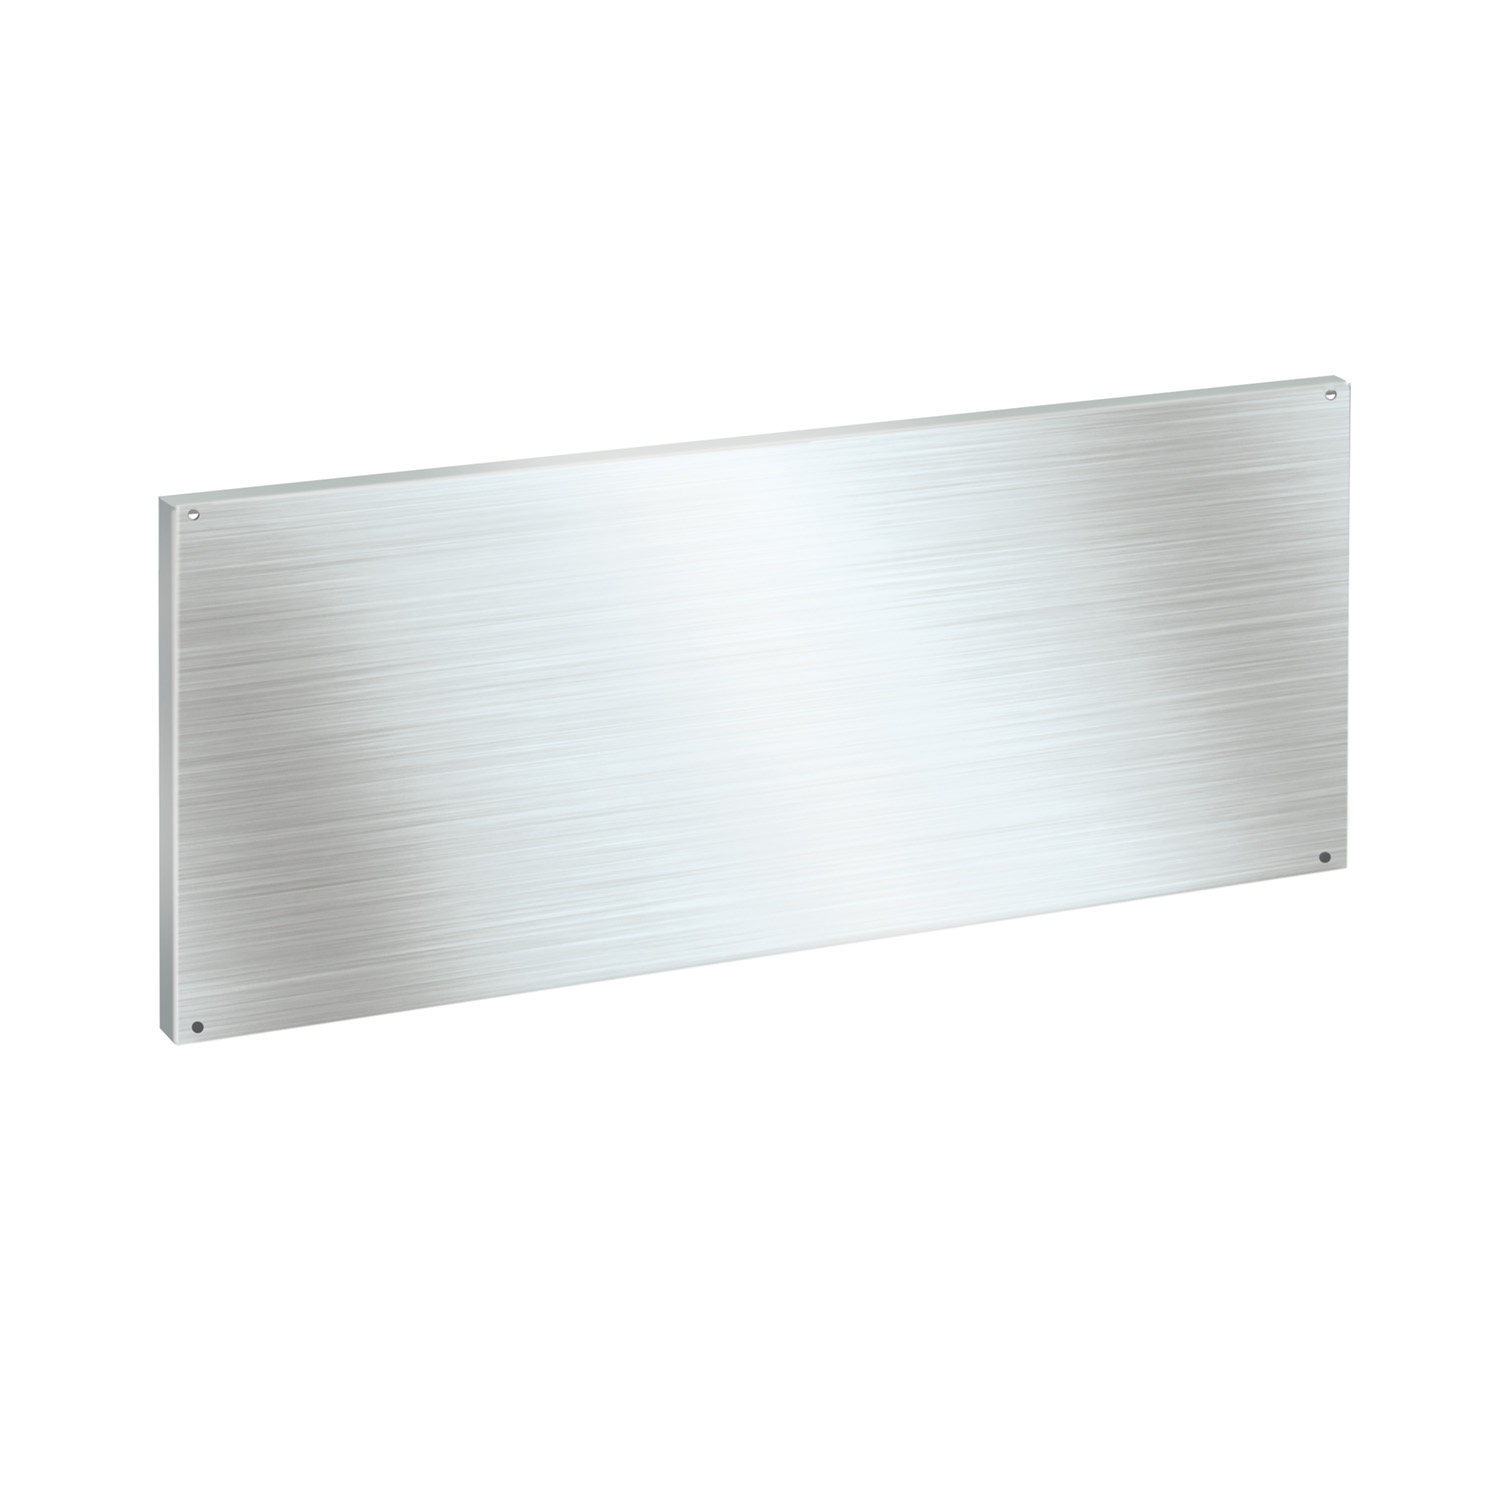 Stainless steel back panel (440 x 1200mm)